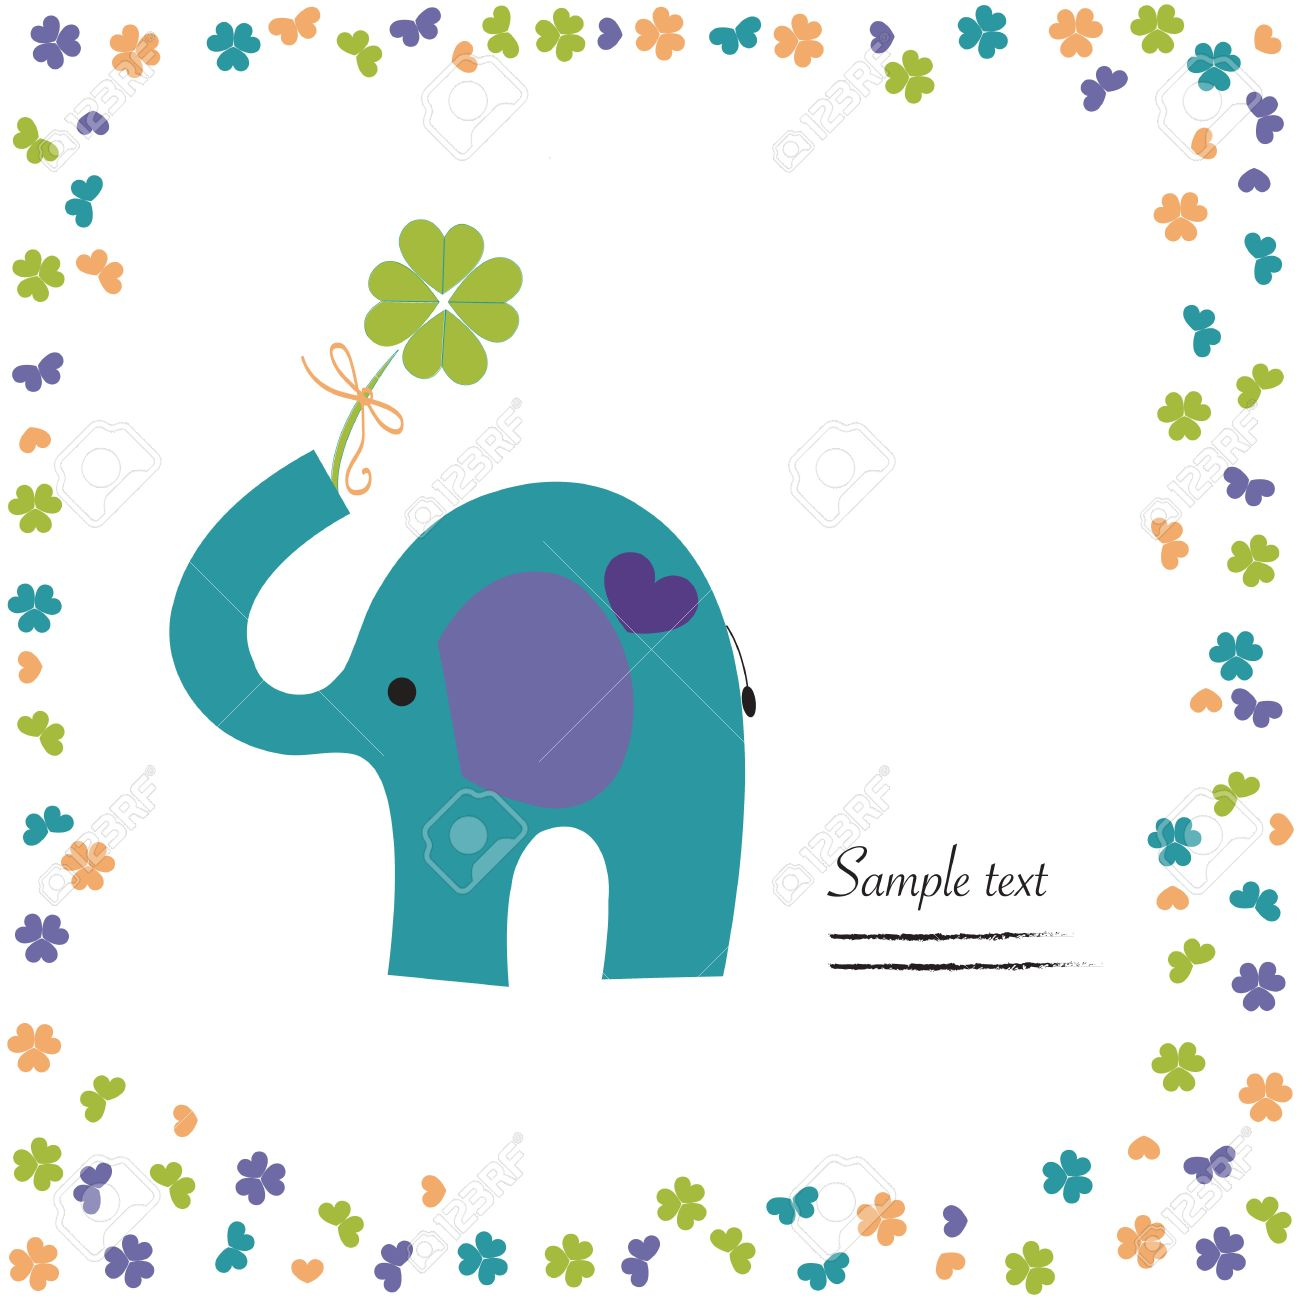 Elephant with clover vector good luck greeting card royalty free elephant with clover vector good luck greeting card stock vector 34952025 m4hsunfo